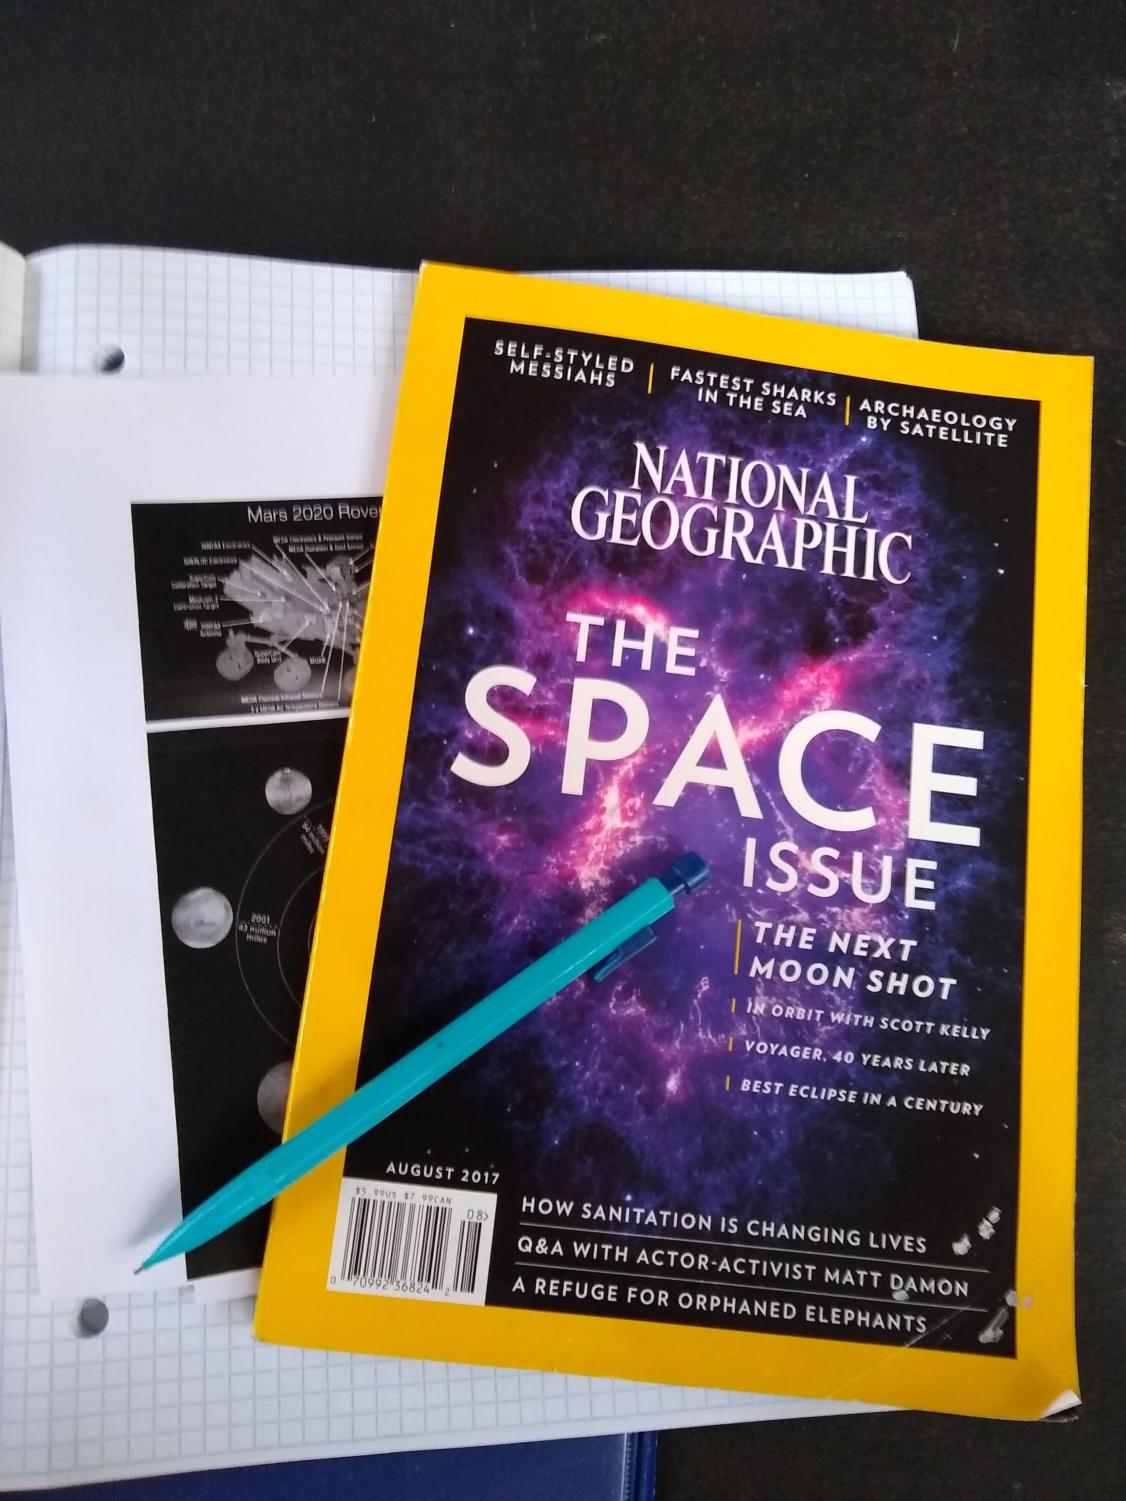 Stacked reading materials share information all about recent space exploration.